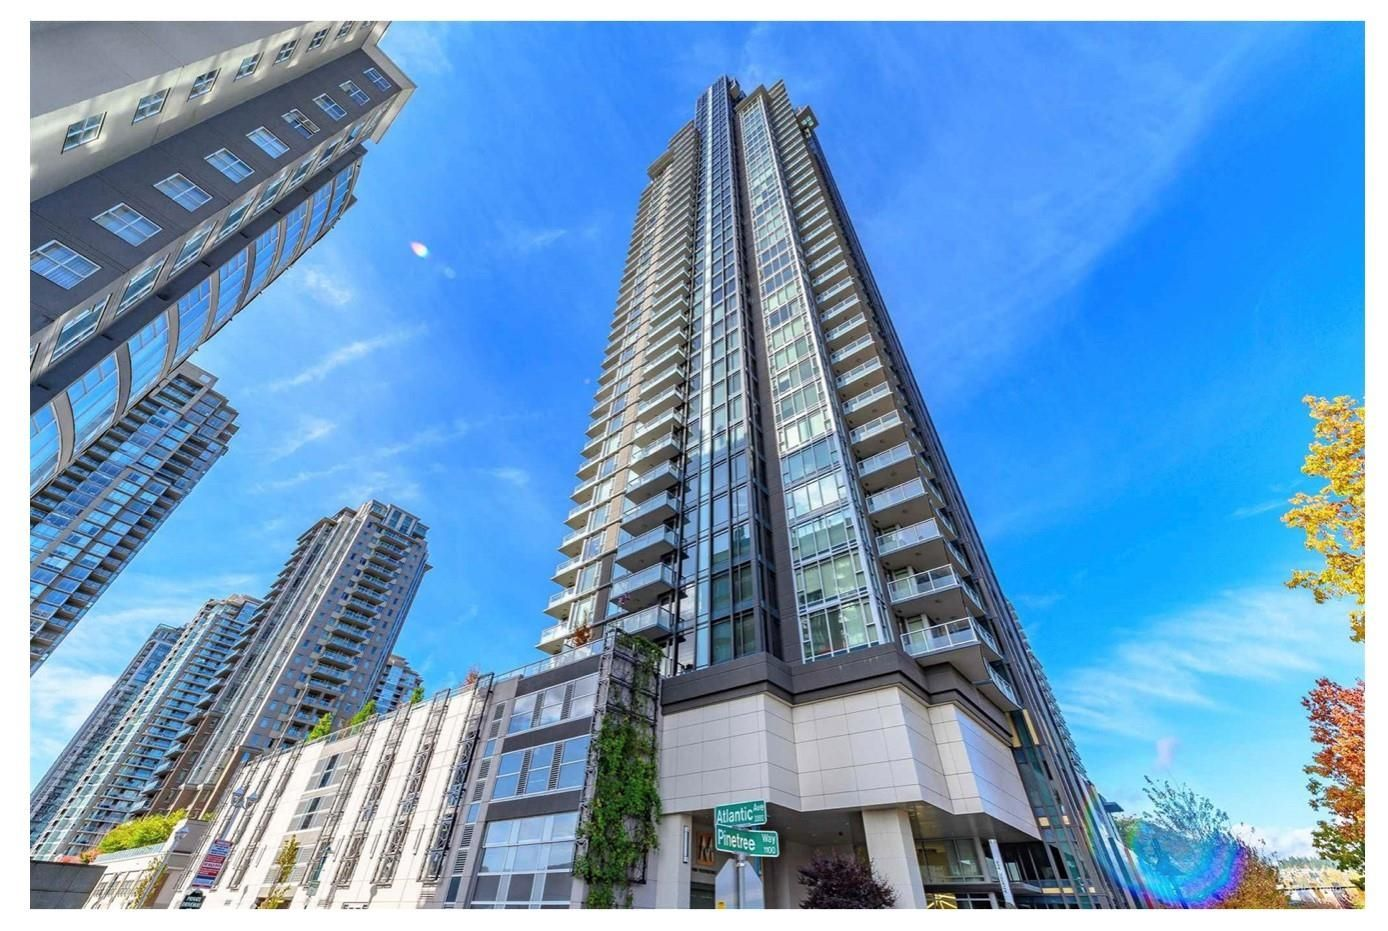 Main Photo: 2008 1188 PINETREE Way in Coquitlam: North Coquitlam Condo for sale : MLS®# R2622947